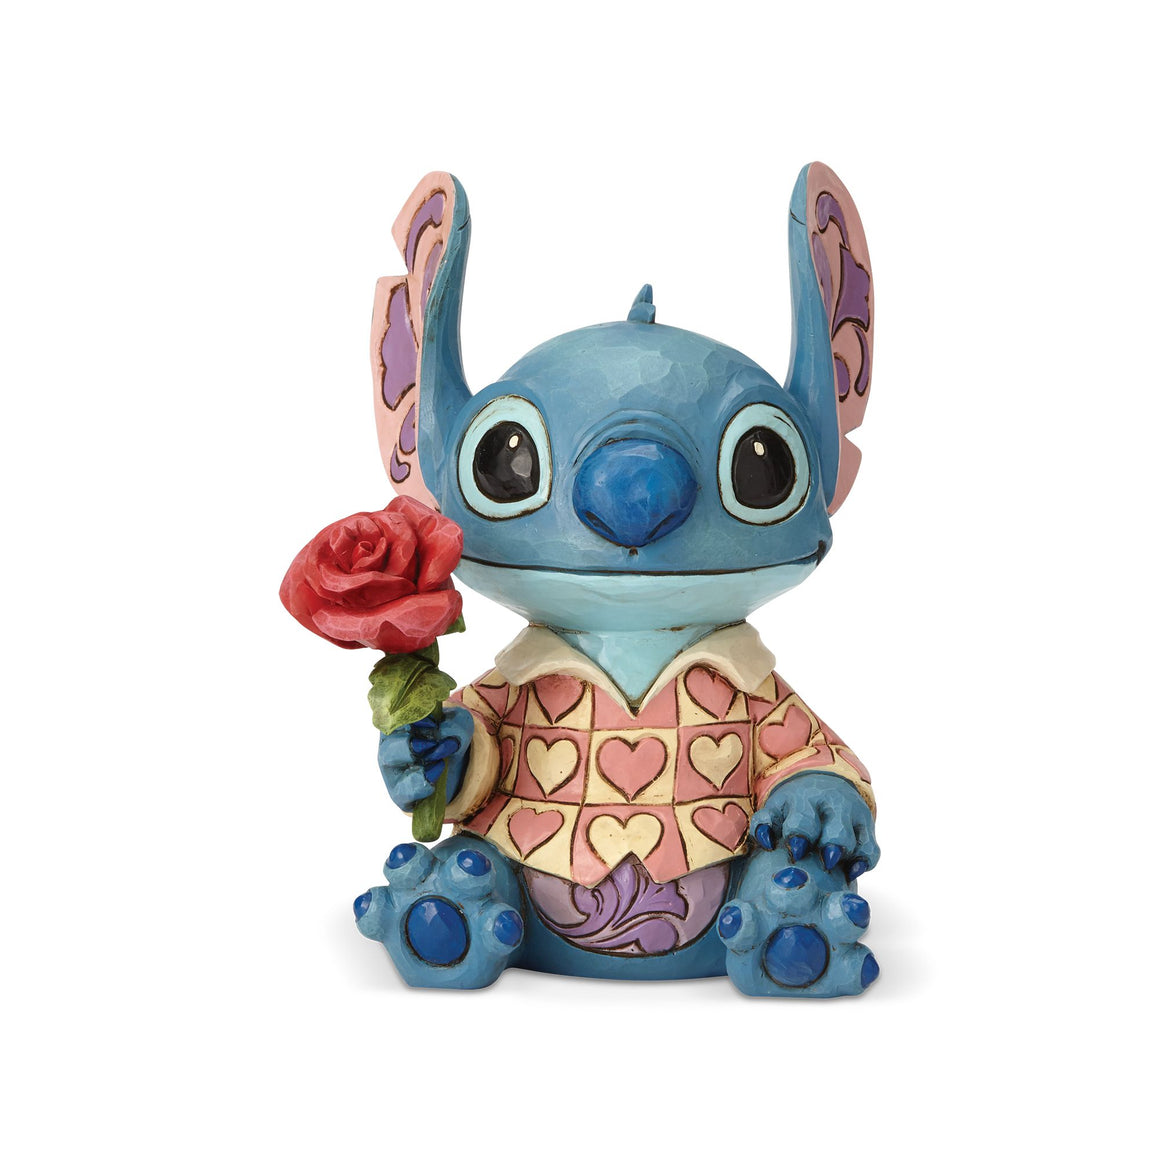 Disney Traditions Clueless Casanova (Stitch Figurine)